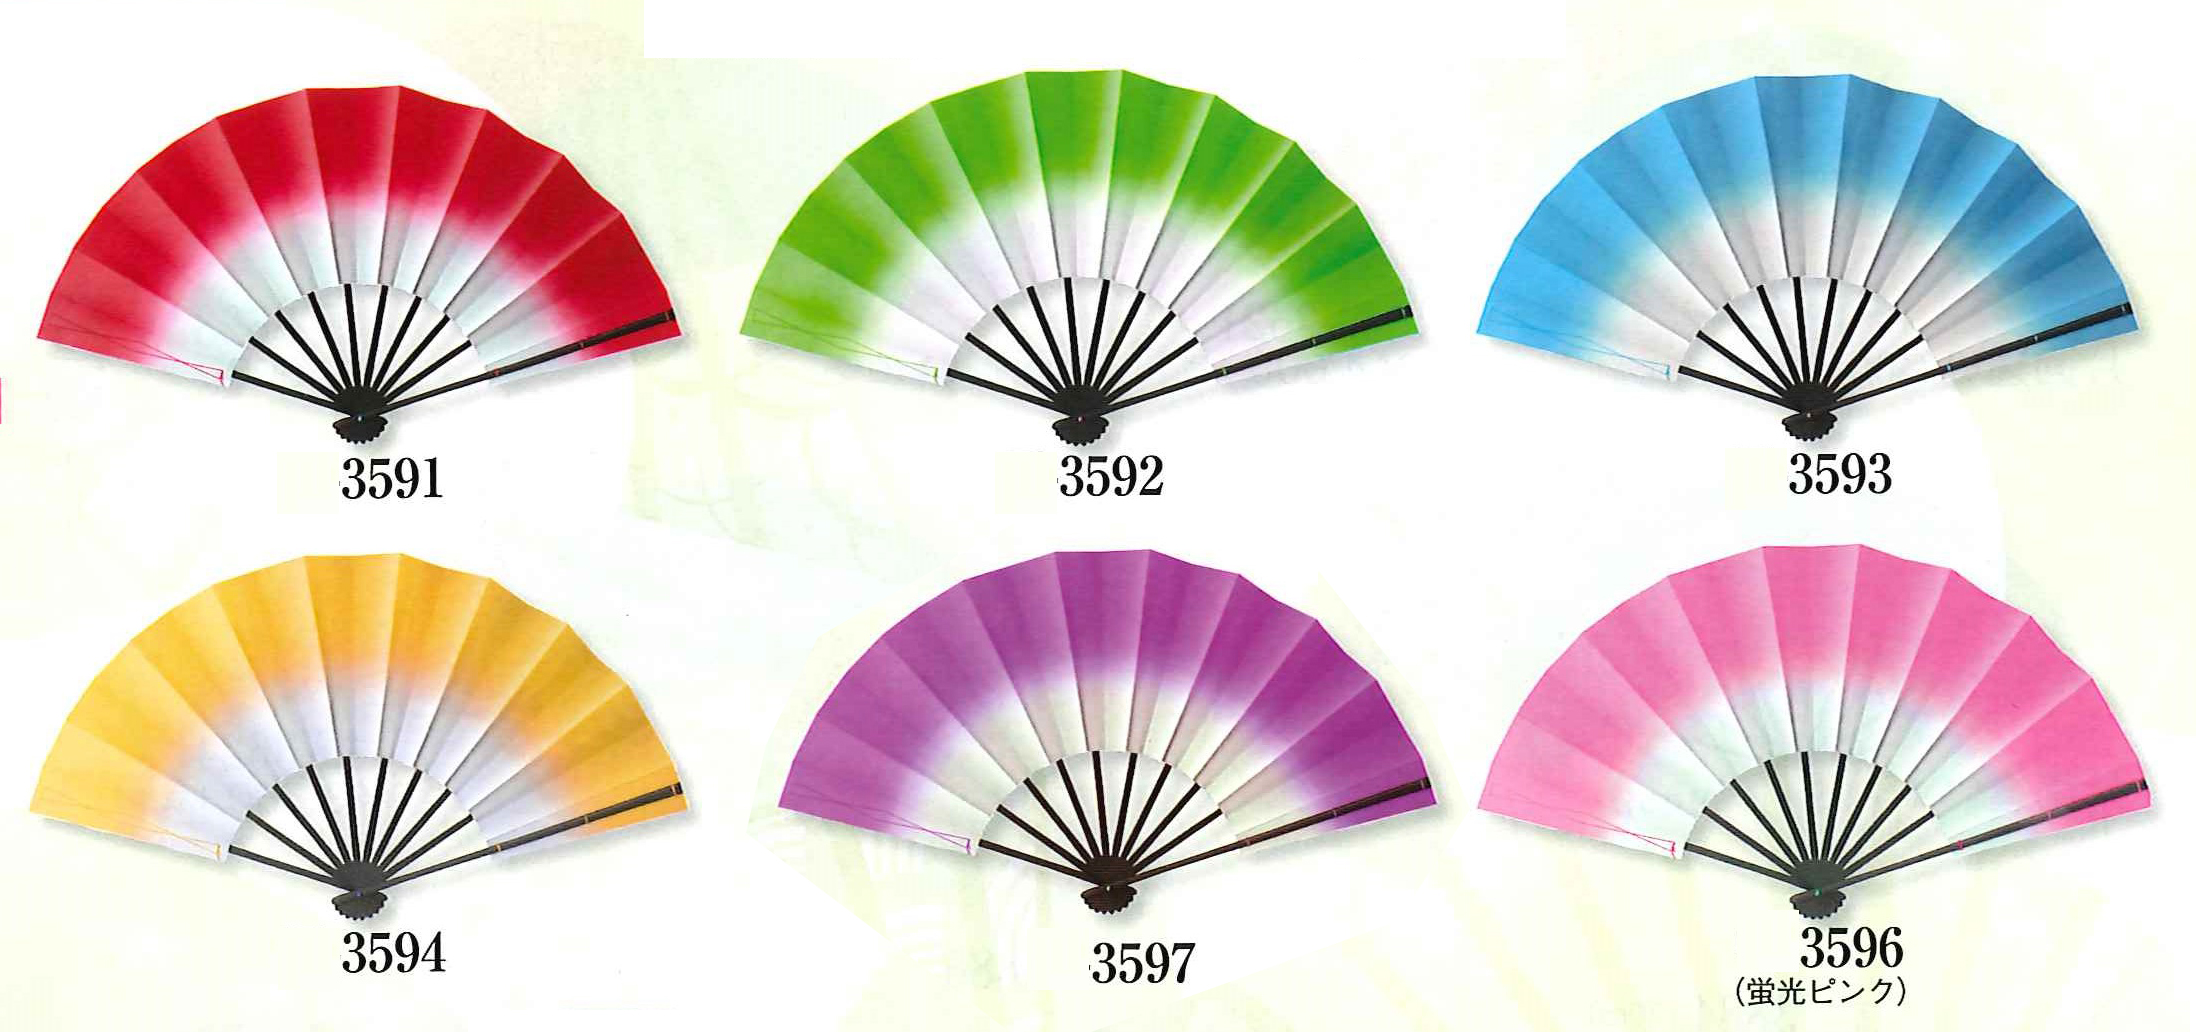 Shaded color Sensu fan with BLACK RIB